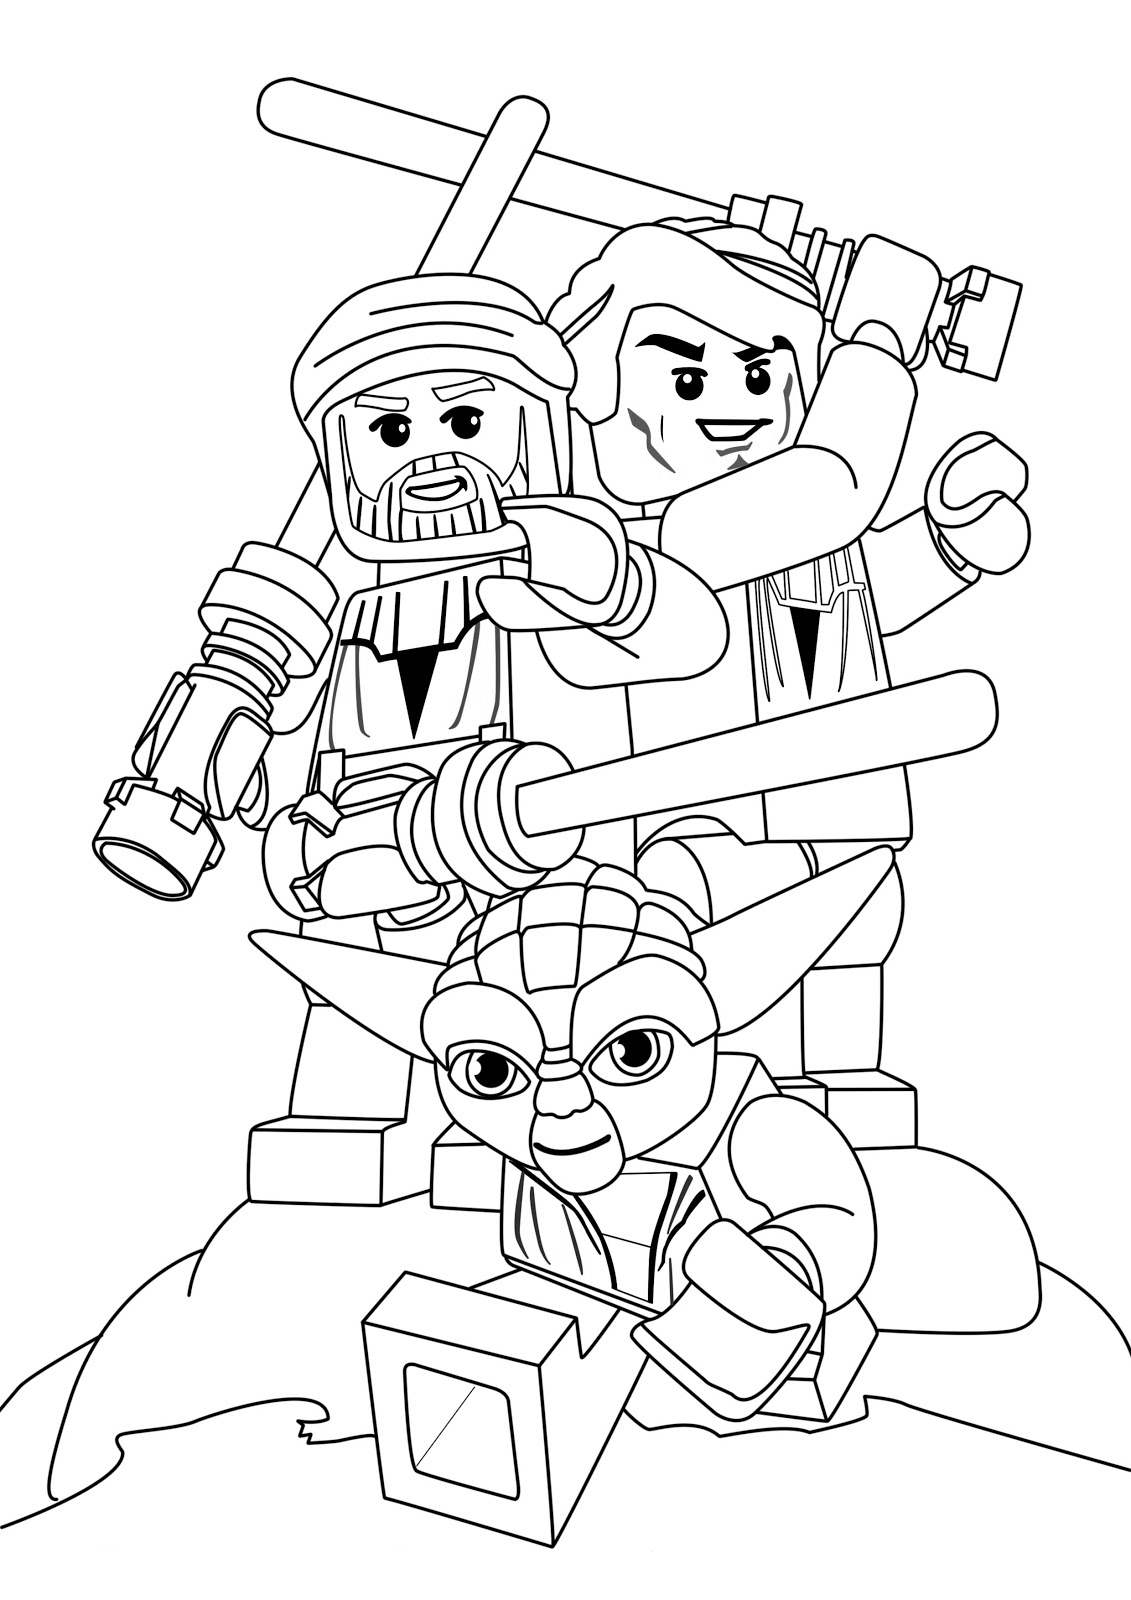 - Lego Star Wars Coloring Pages - Best Coloring Pages For Kids